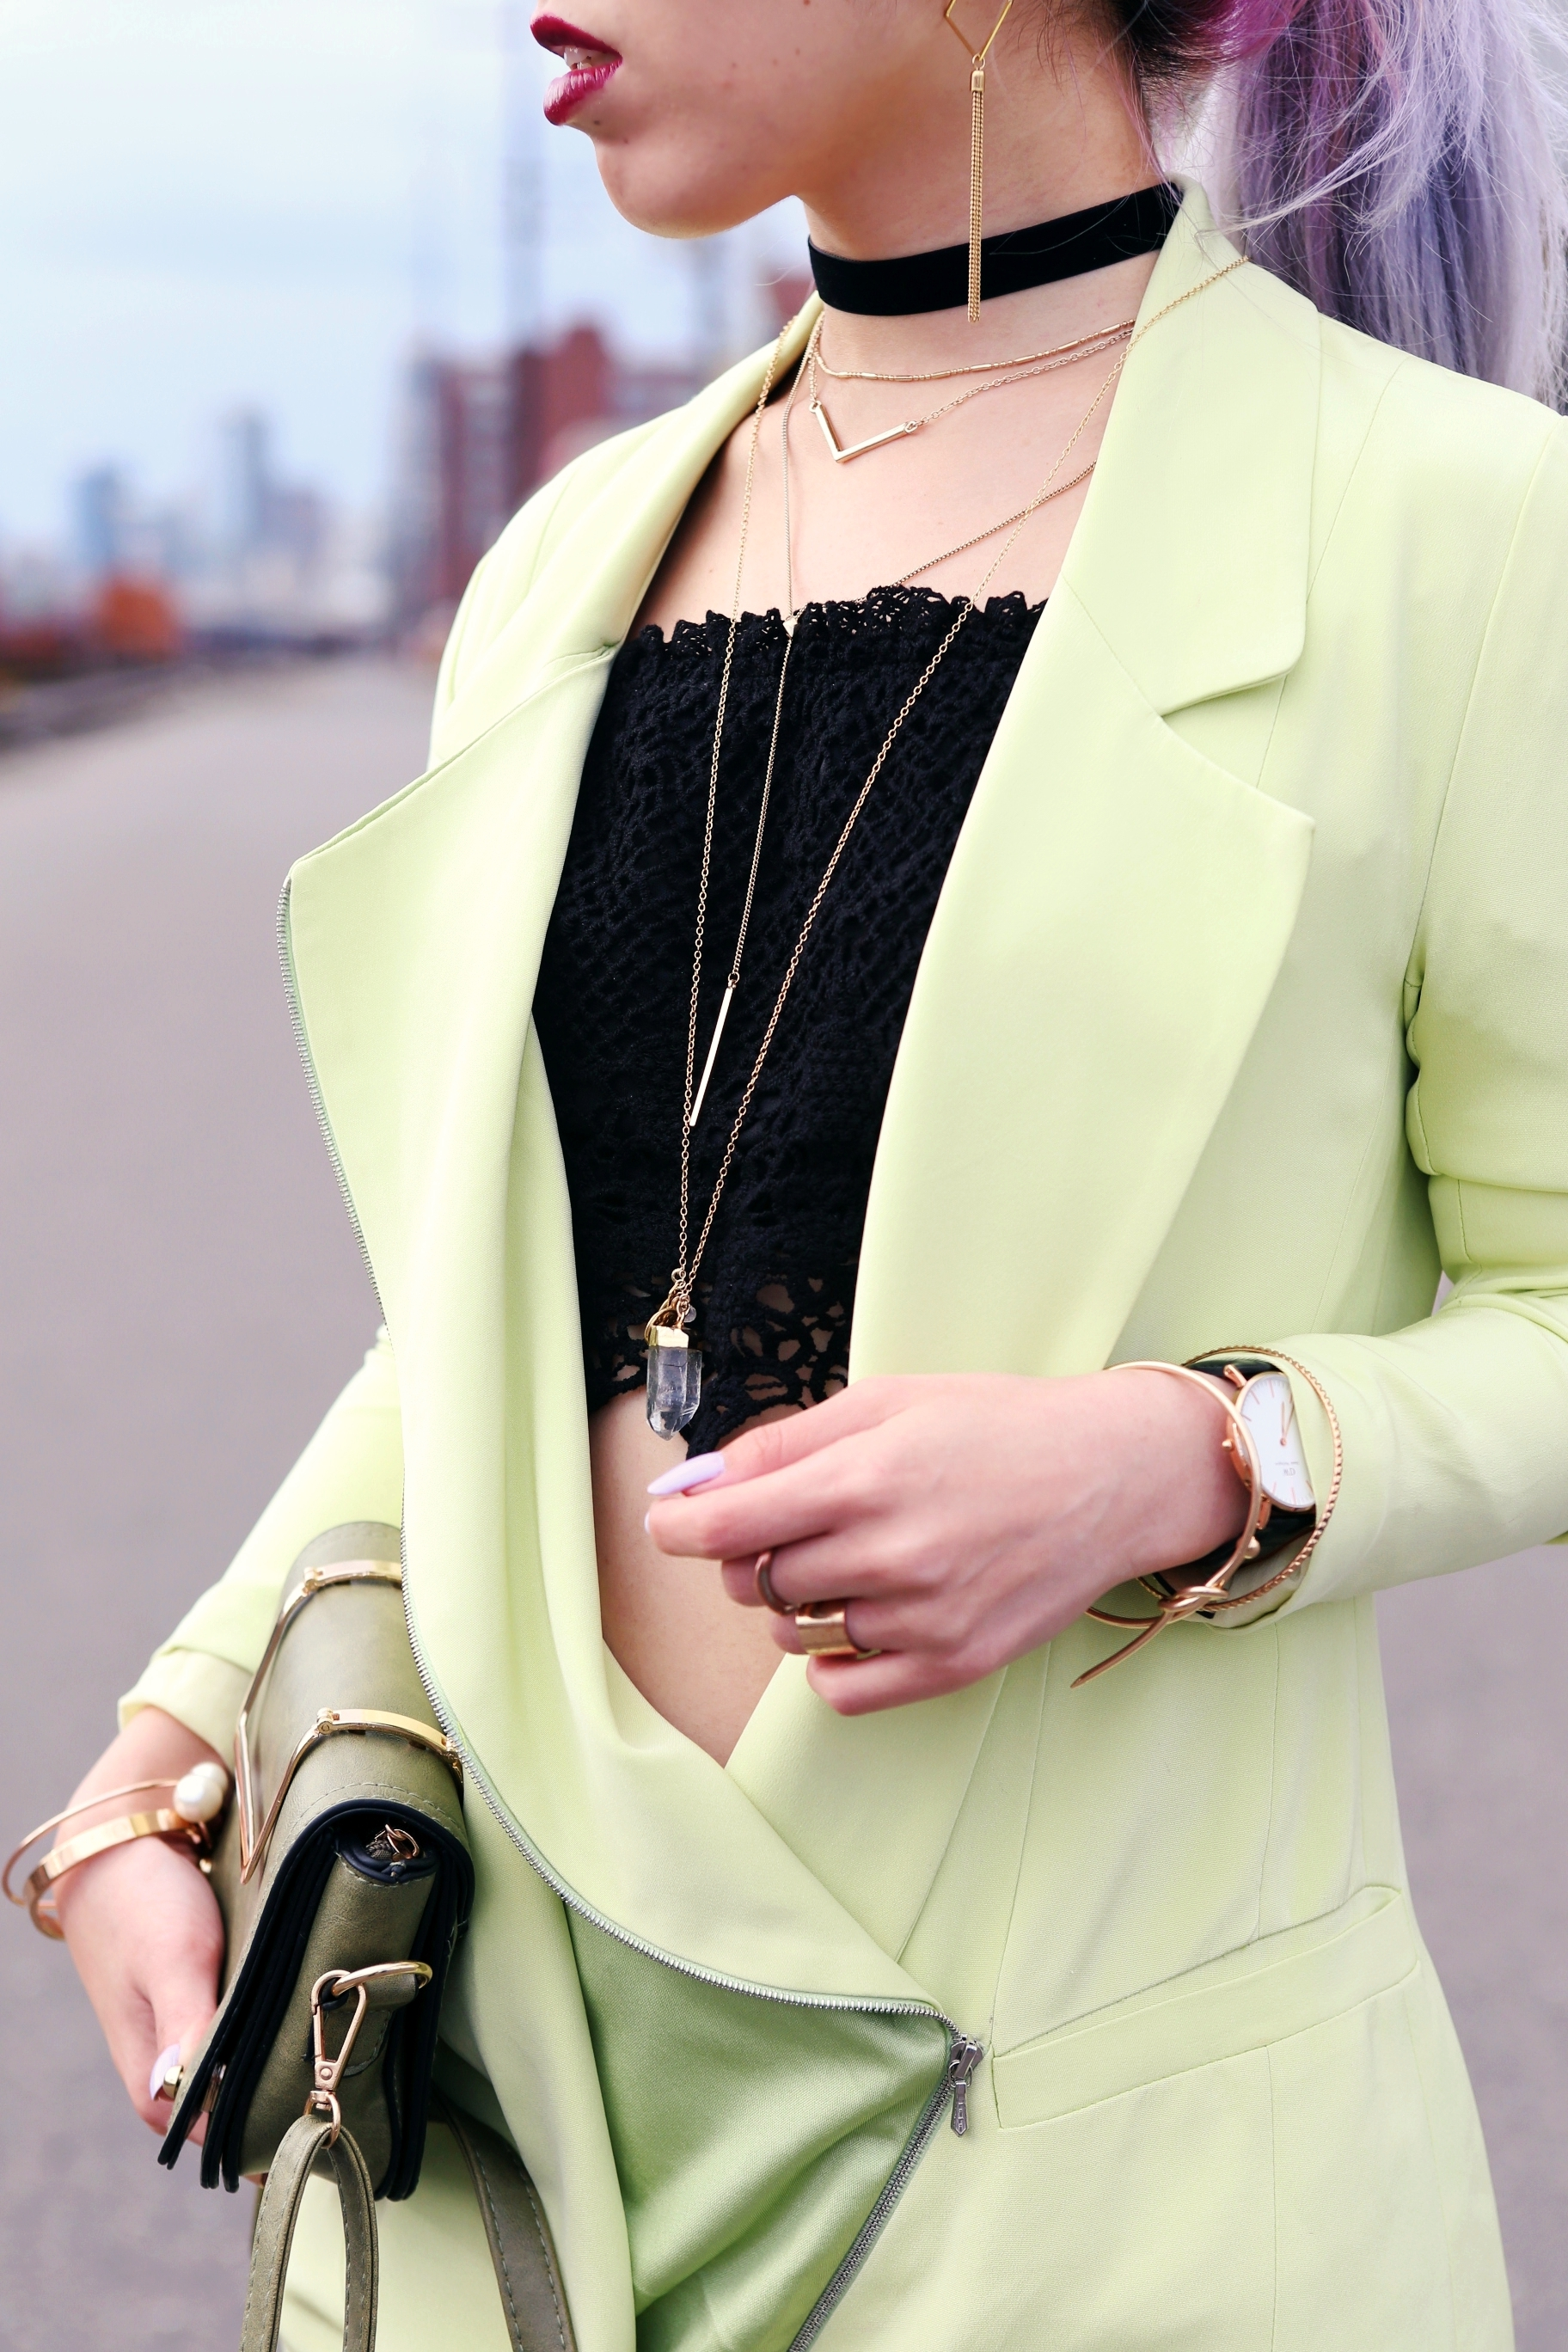 YunaYang Lime Green Jacket Dress_Charlotte Russe Off the shoulder Lace Cropped top_Nastygal Velvet Choker_Emmy Trinh Wish Necklace_Forever 21 Layered Necklace_Daniel Wellington Watch_Romwe Khaki Minibag_Aikas Love Closet_Seattle Fashion Blogger_Japanese Fashion_Mermaid Hair_Lavender Hair